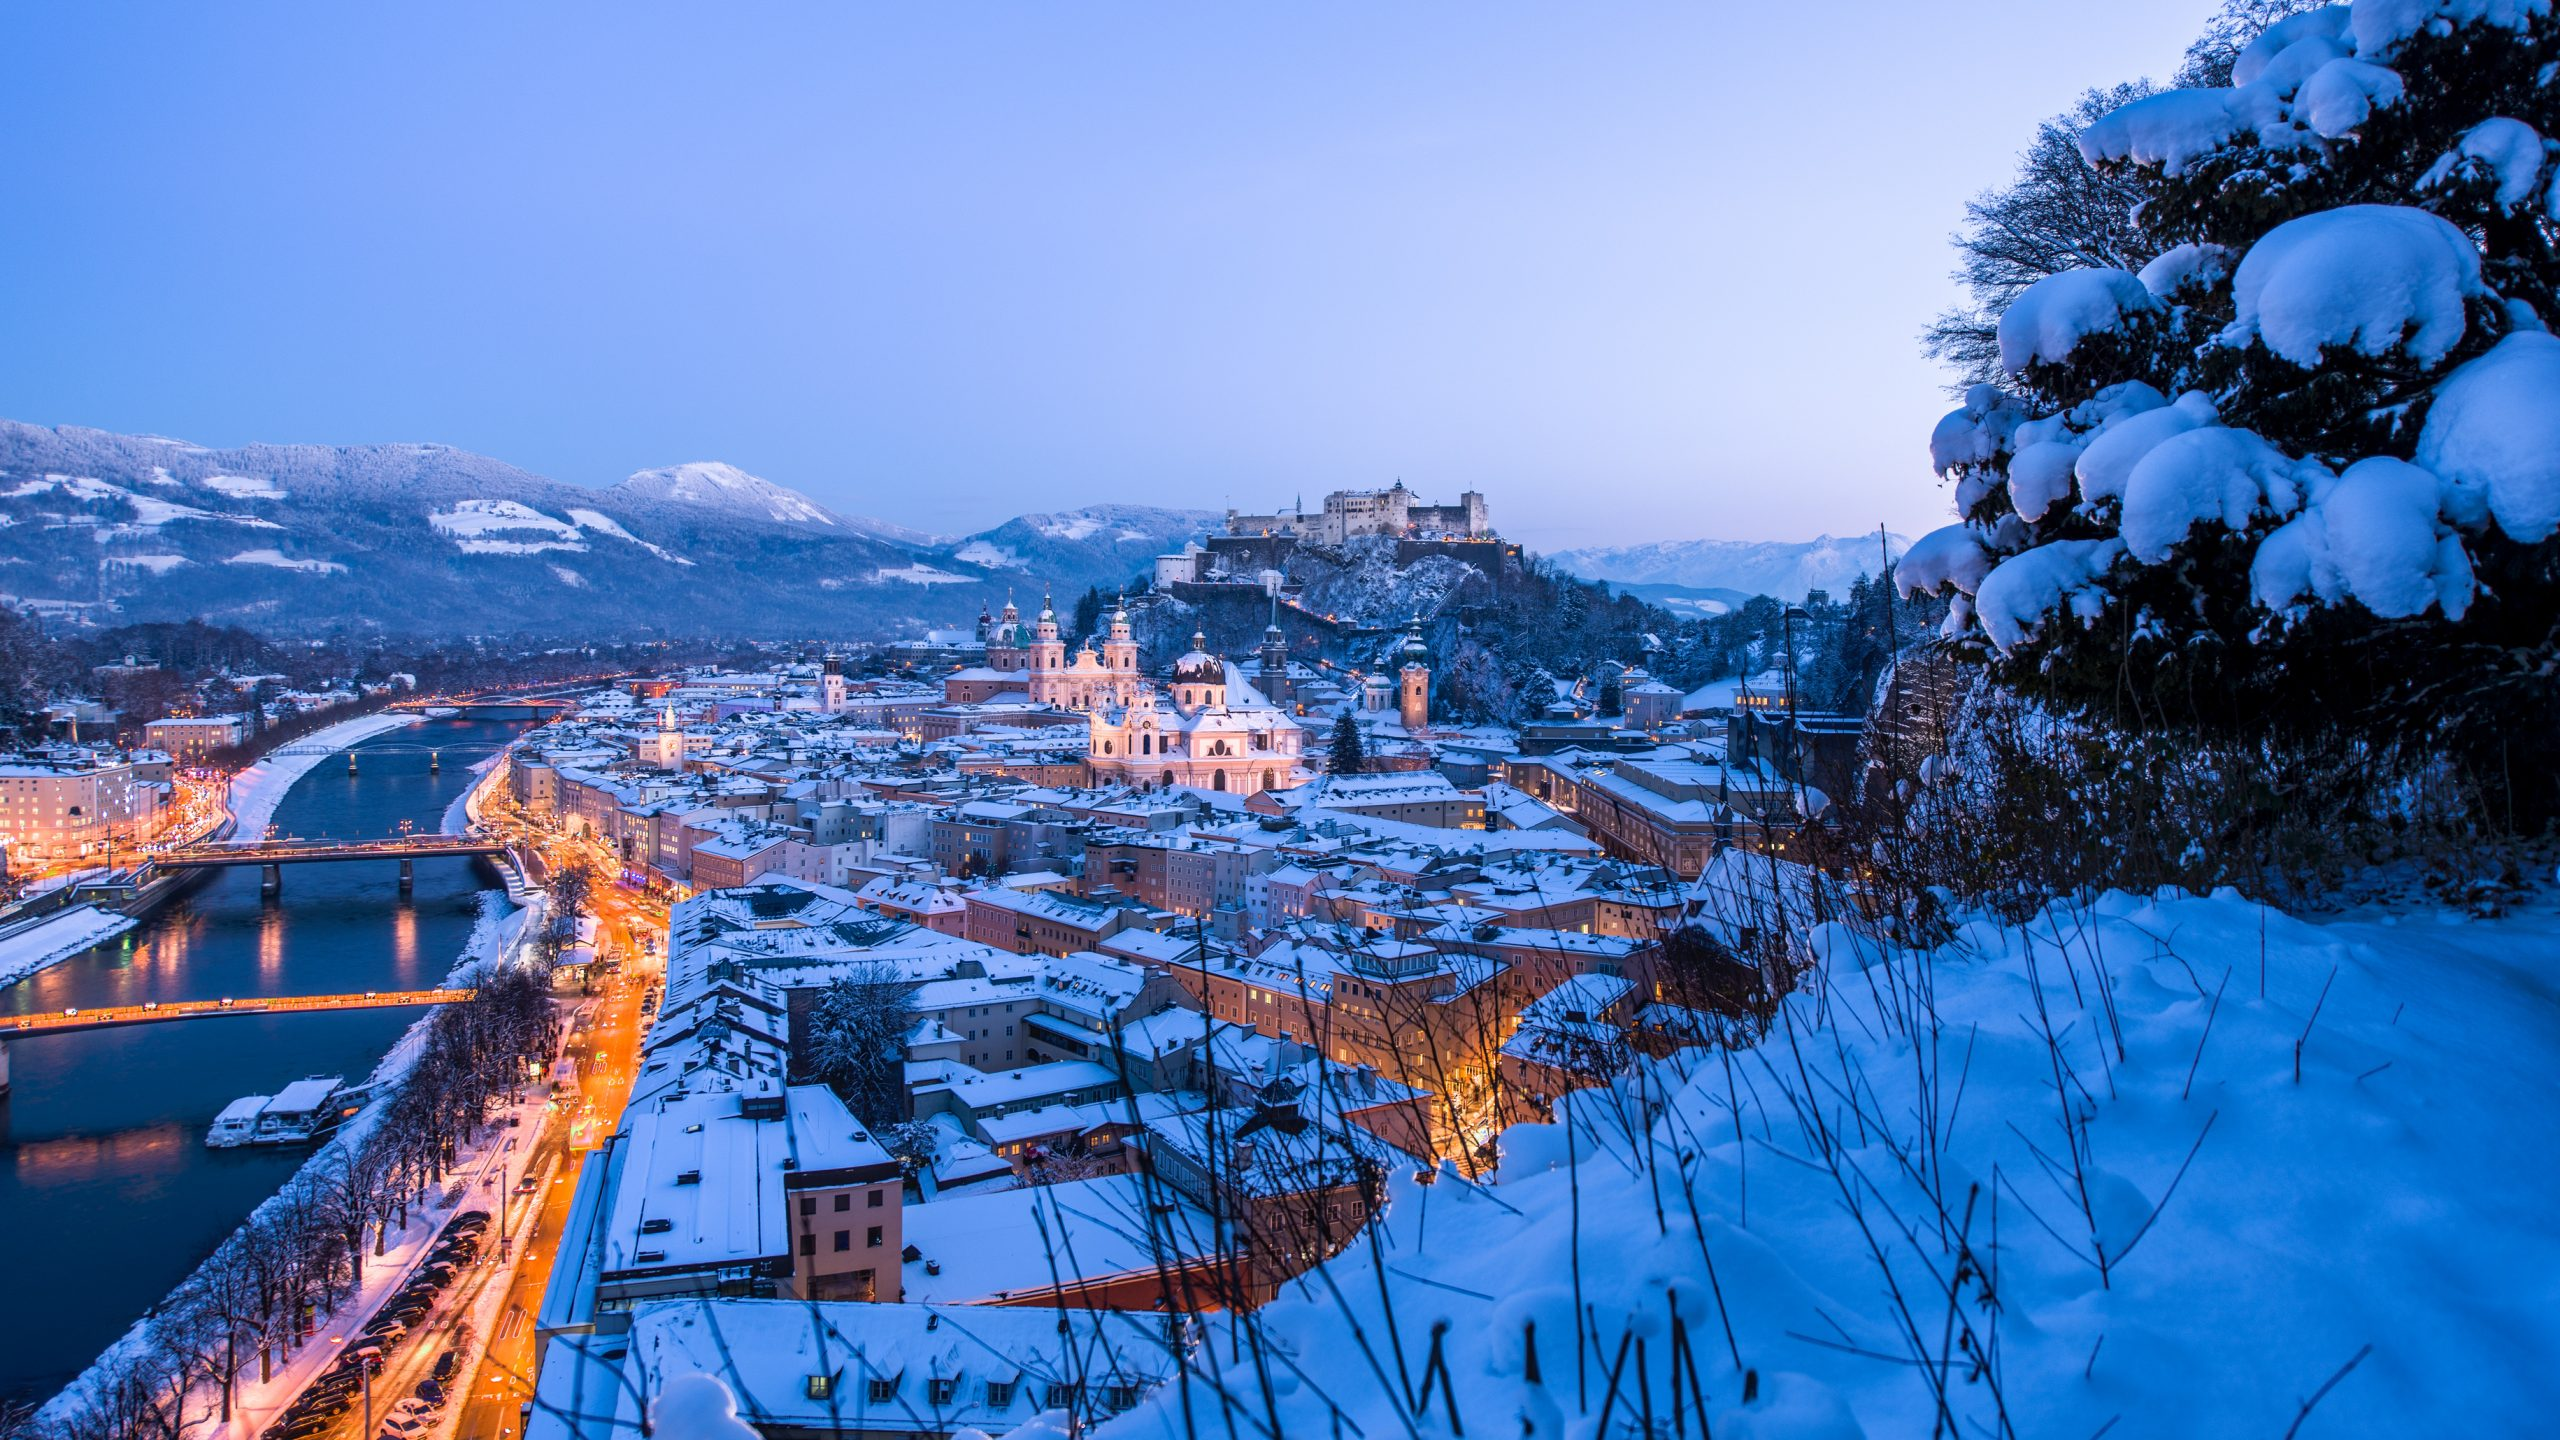 Winter view to the town of Salzburg